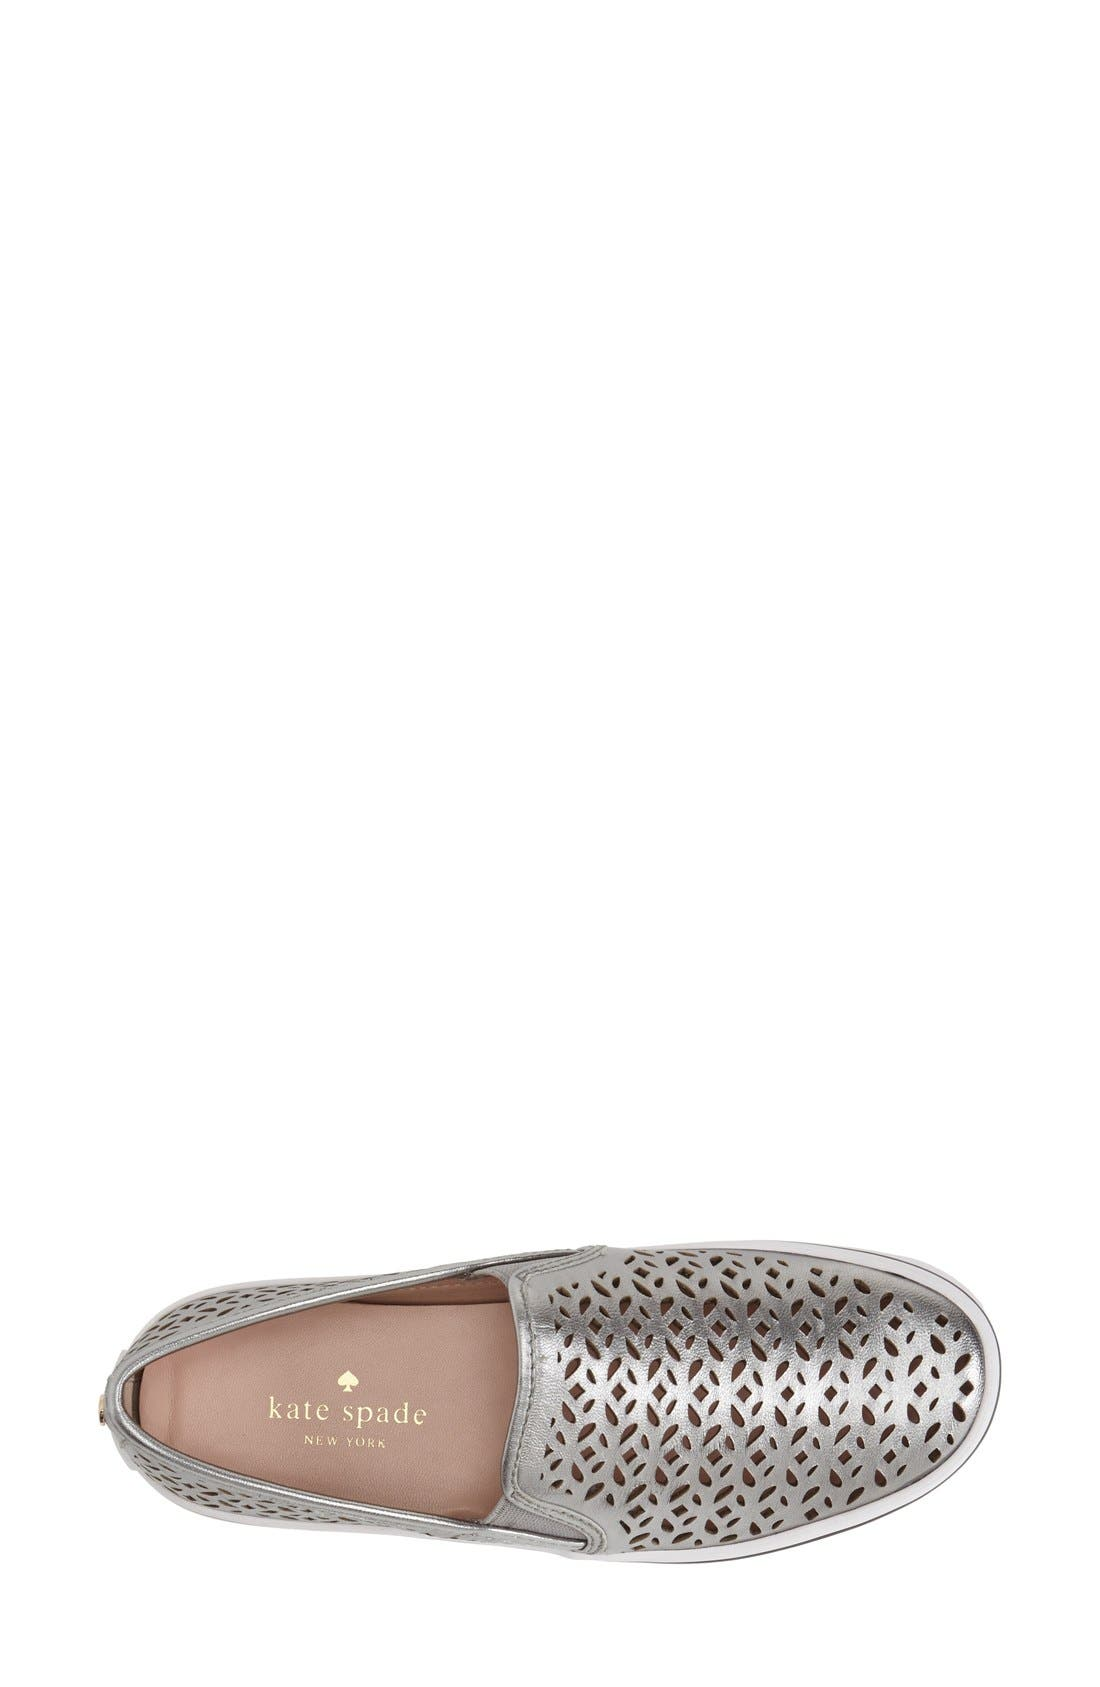 Alternate Image 3  - kate spade new york 'saddie' slip-on sneaker (Women)